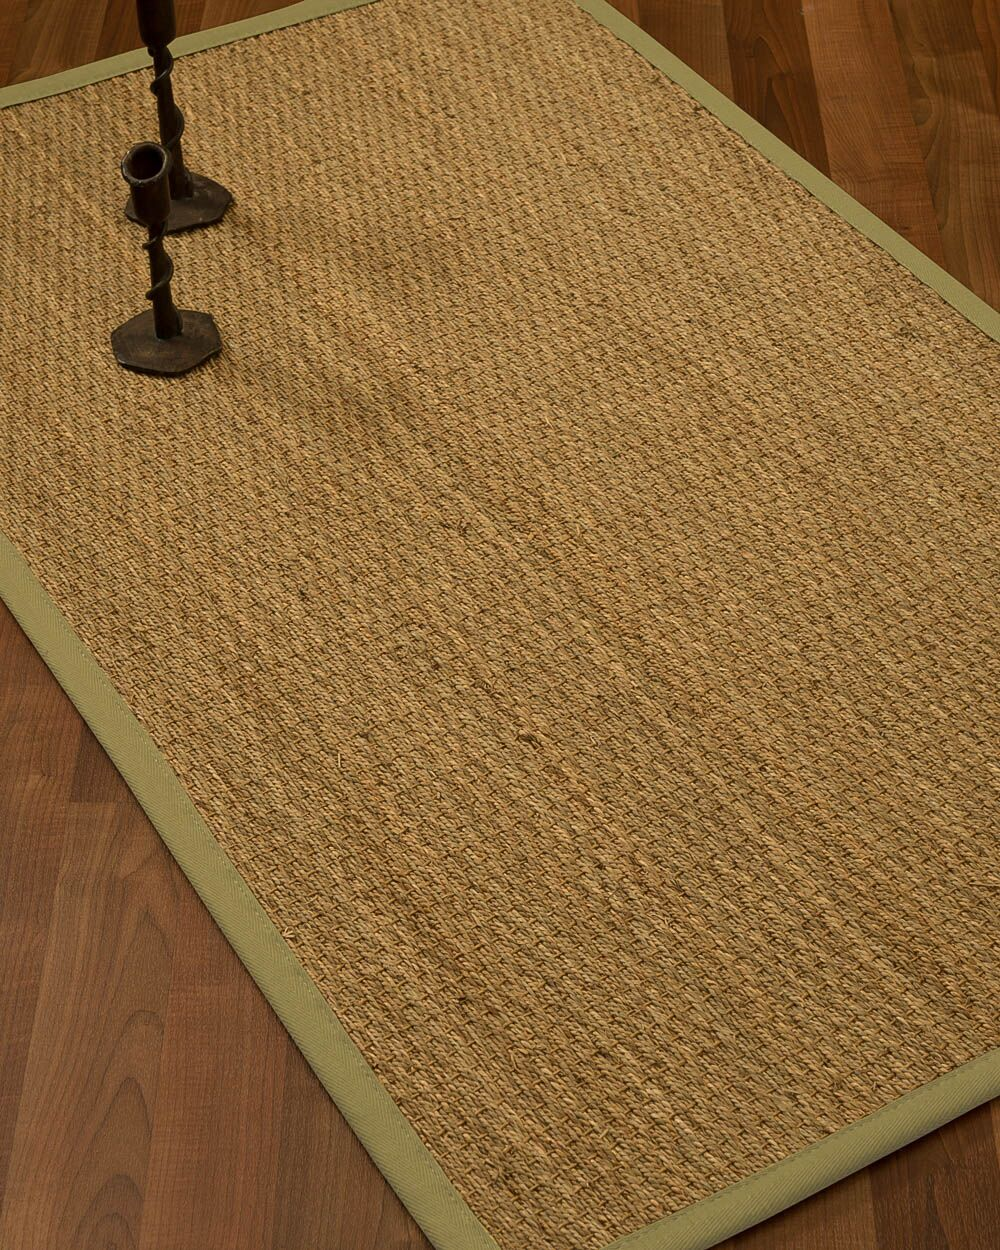 Vanmatre Border Hand-Woven Beige Area Rug Rug Size: Rectangle 6' x 9', Rug Pad Included: Yes